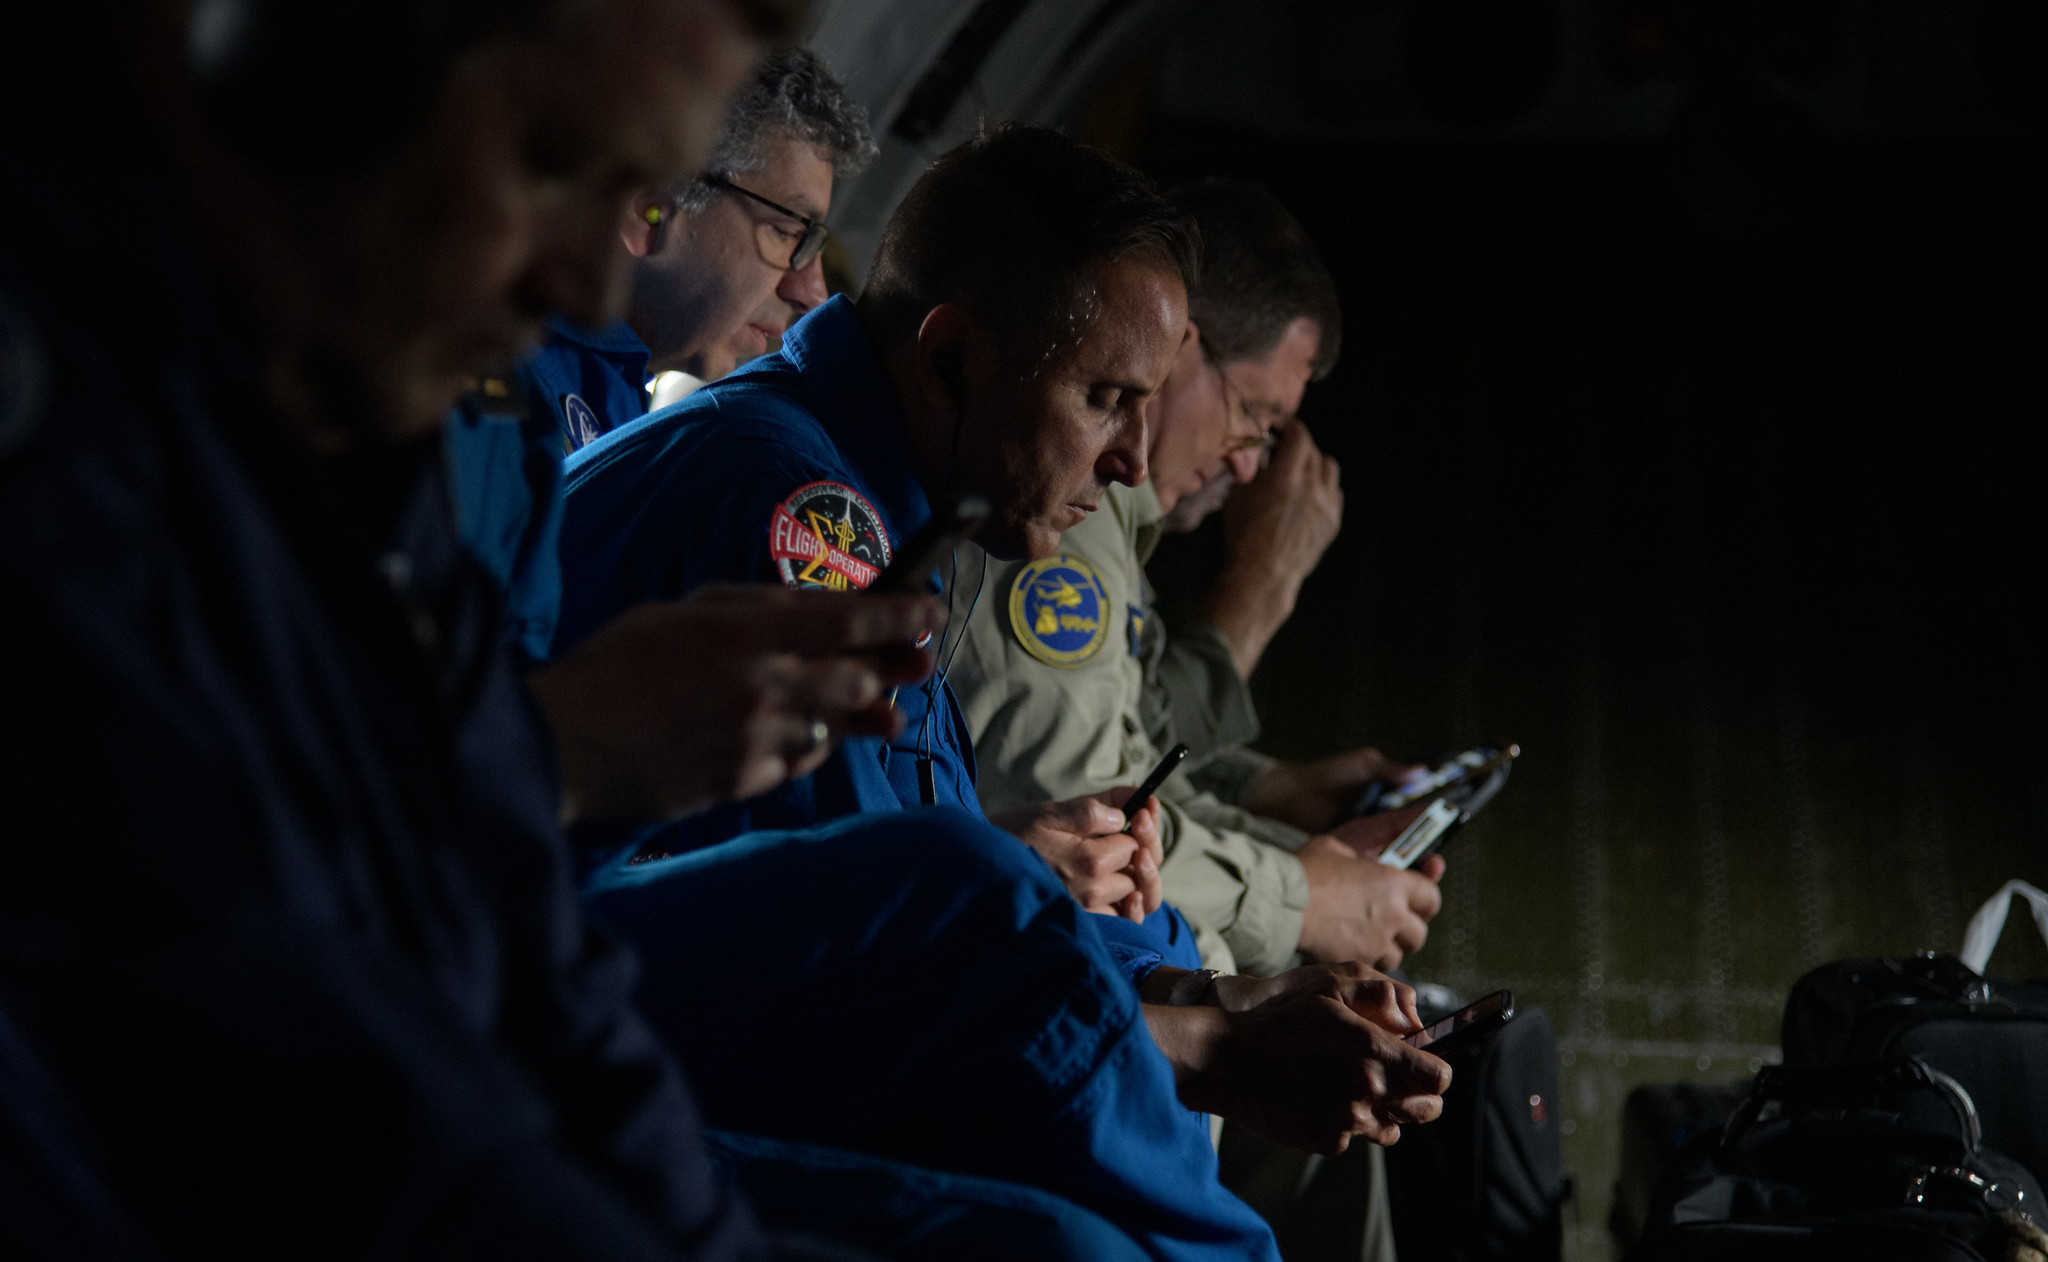 Preparing for the Expedition 59 Space Station Crew Landing